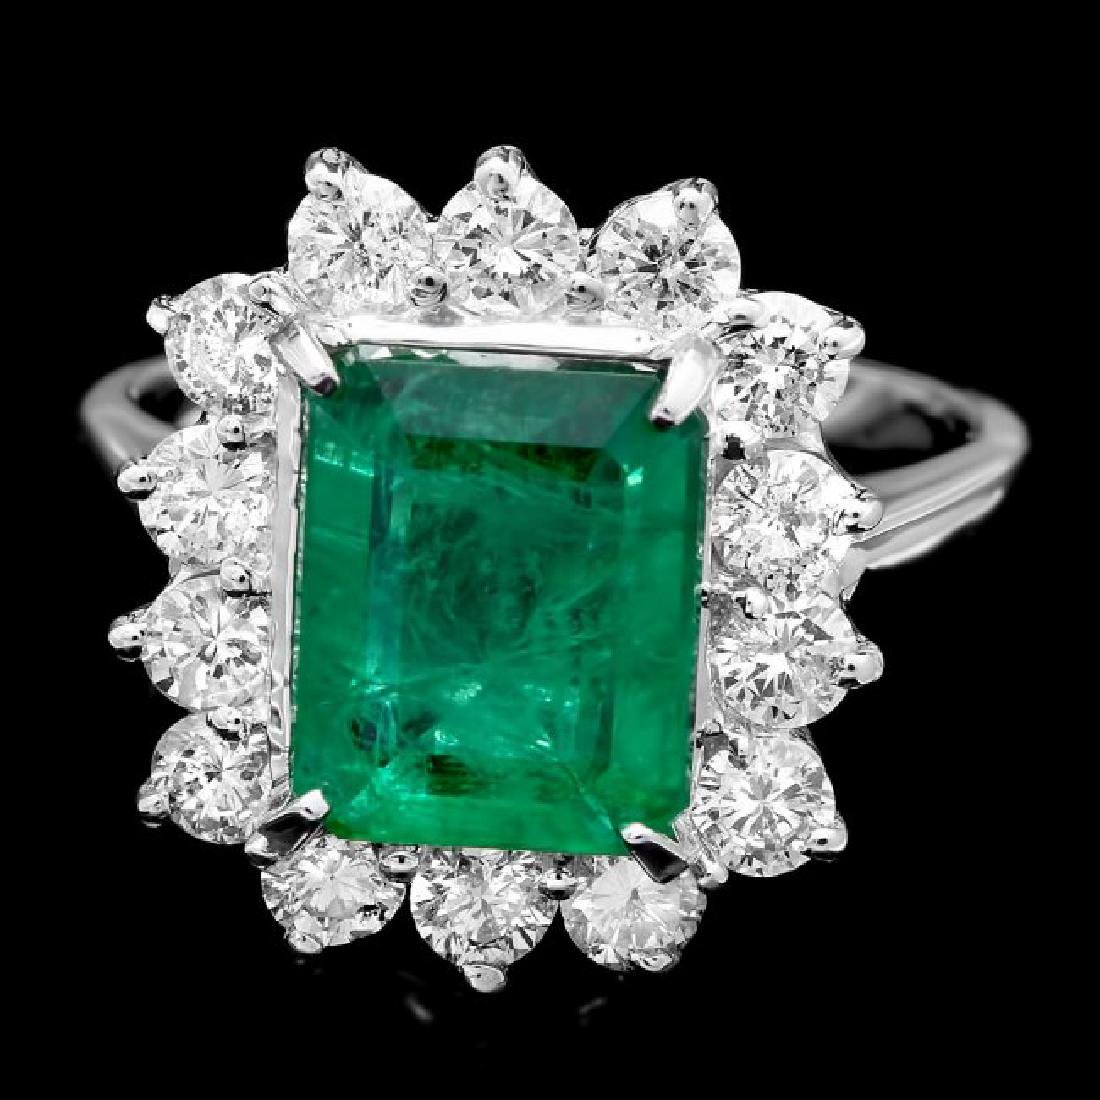 14k White Gold 3.13ct Emerald 1.35ct Diamond Ring